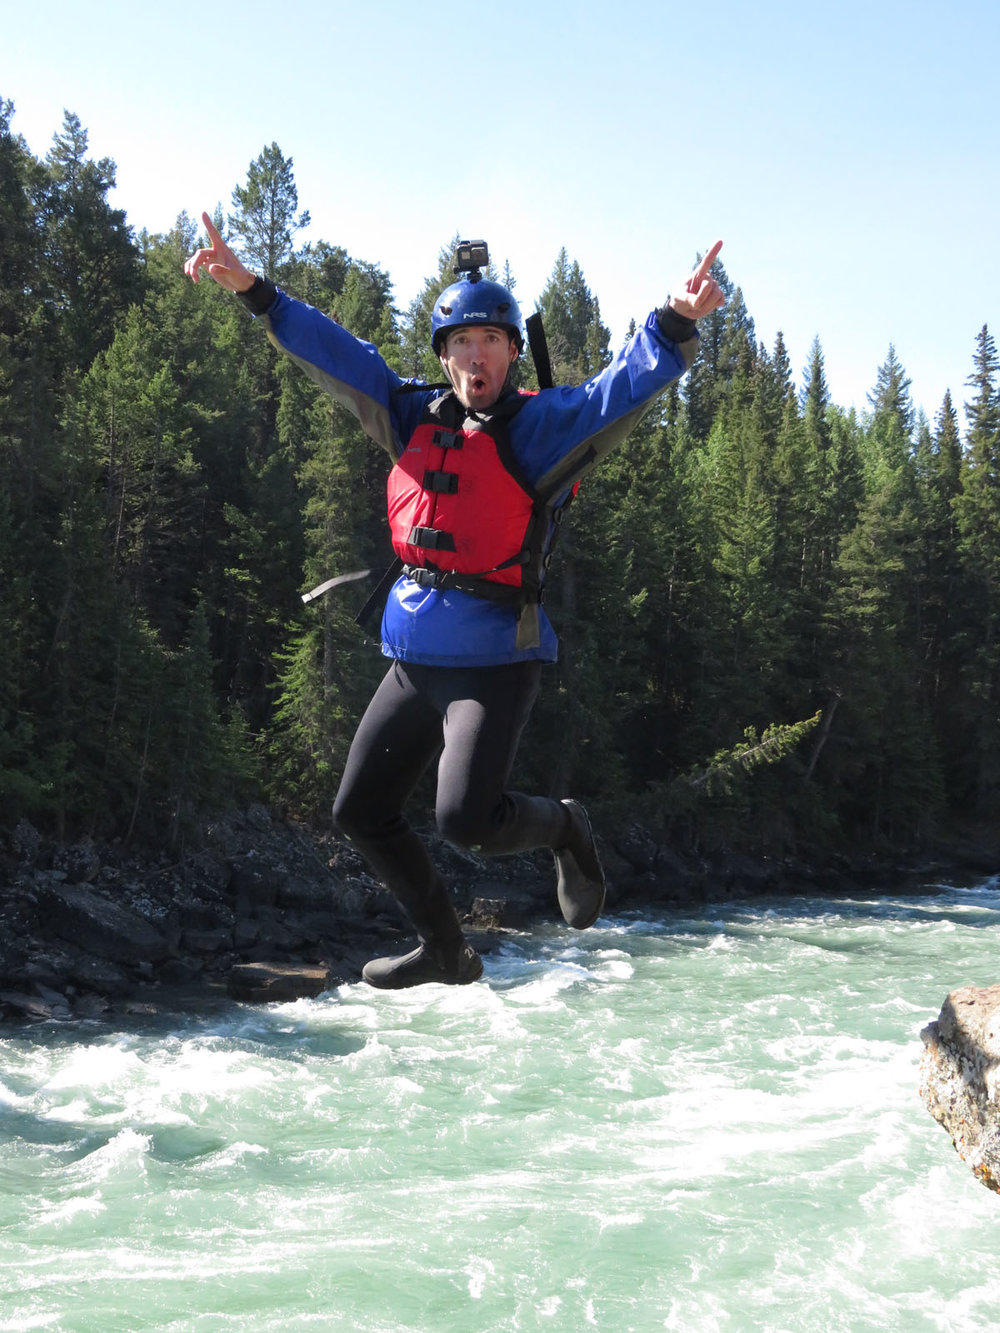 We found this super fun picture of Jon jumping off the cliff while drinking tea and having snacks! Photo: Chinook Rafting